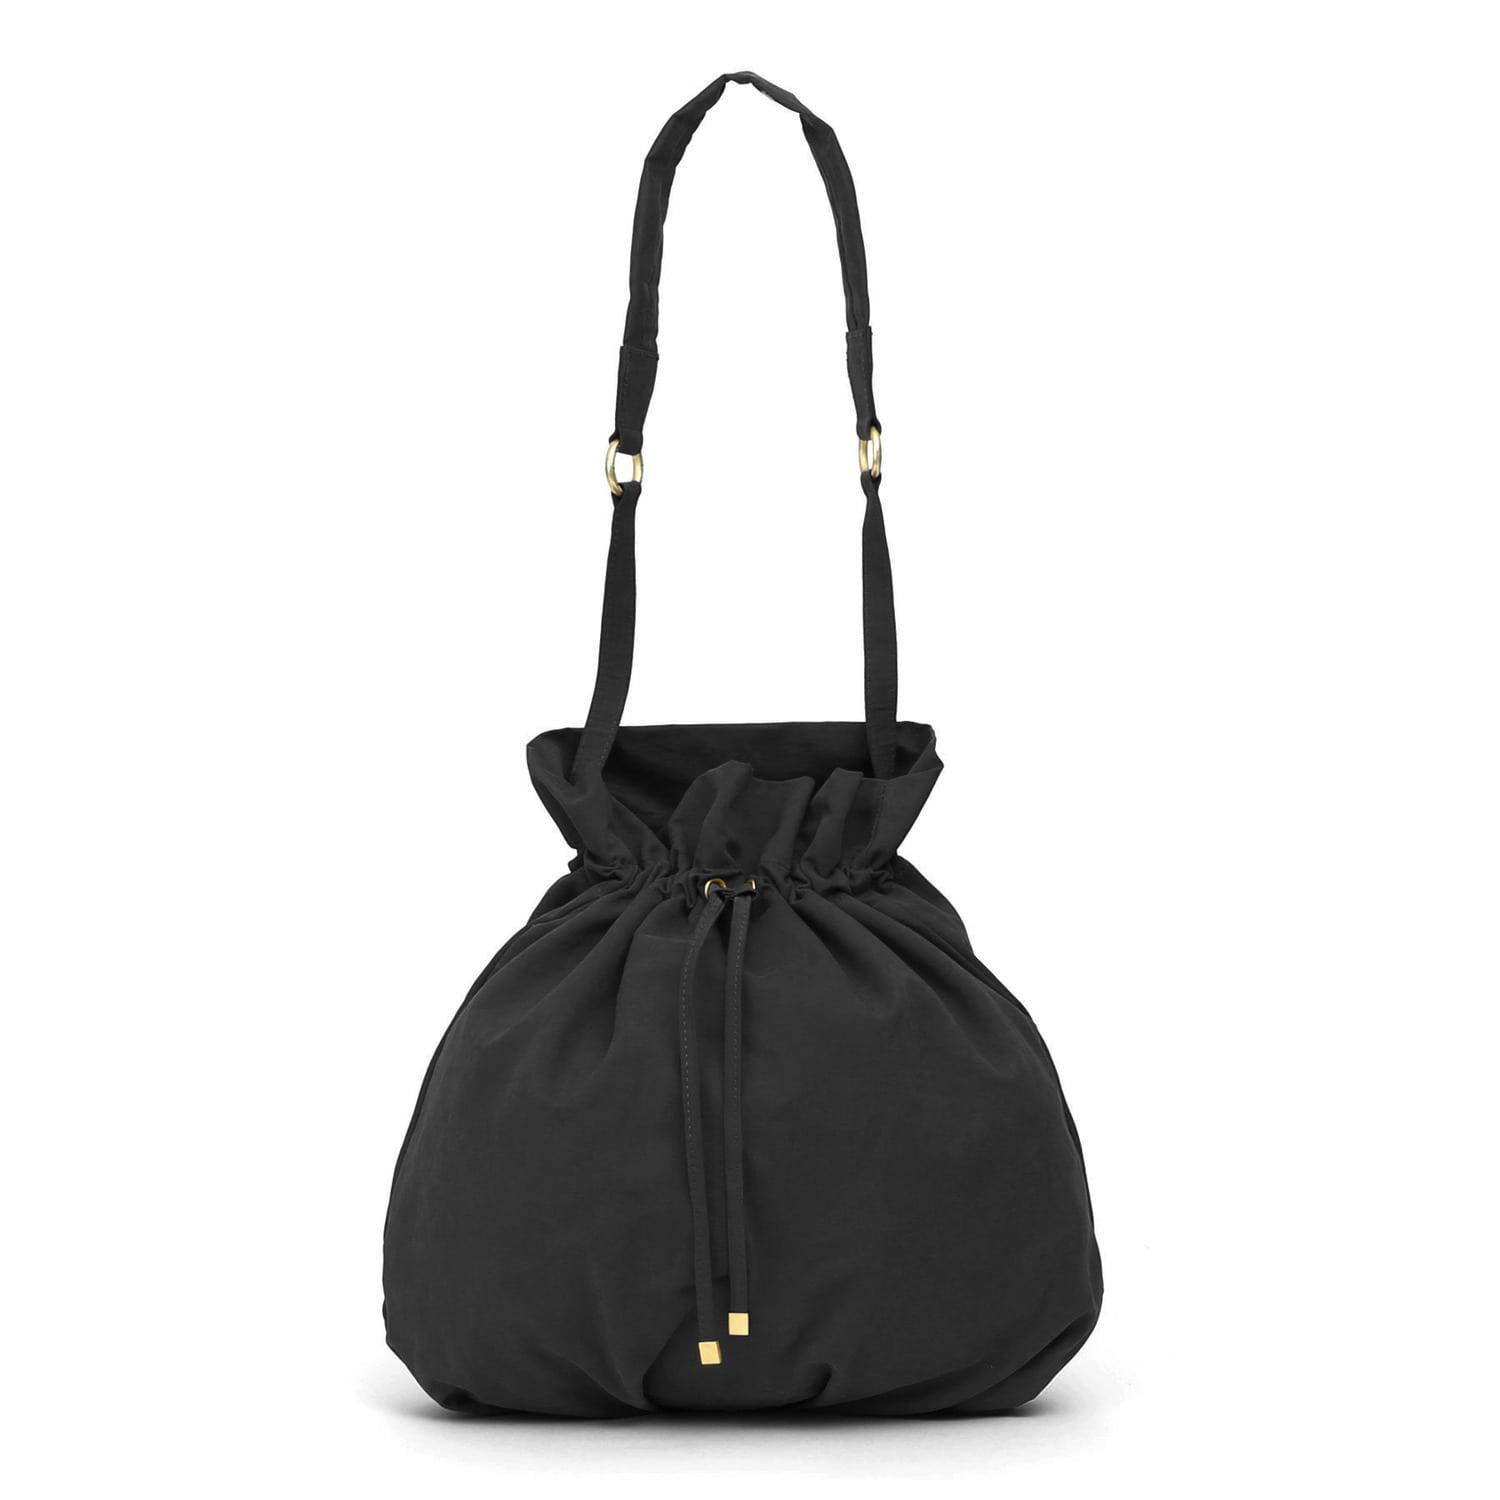 POT BAG / WRINKLE / NPC / DARK BLACK